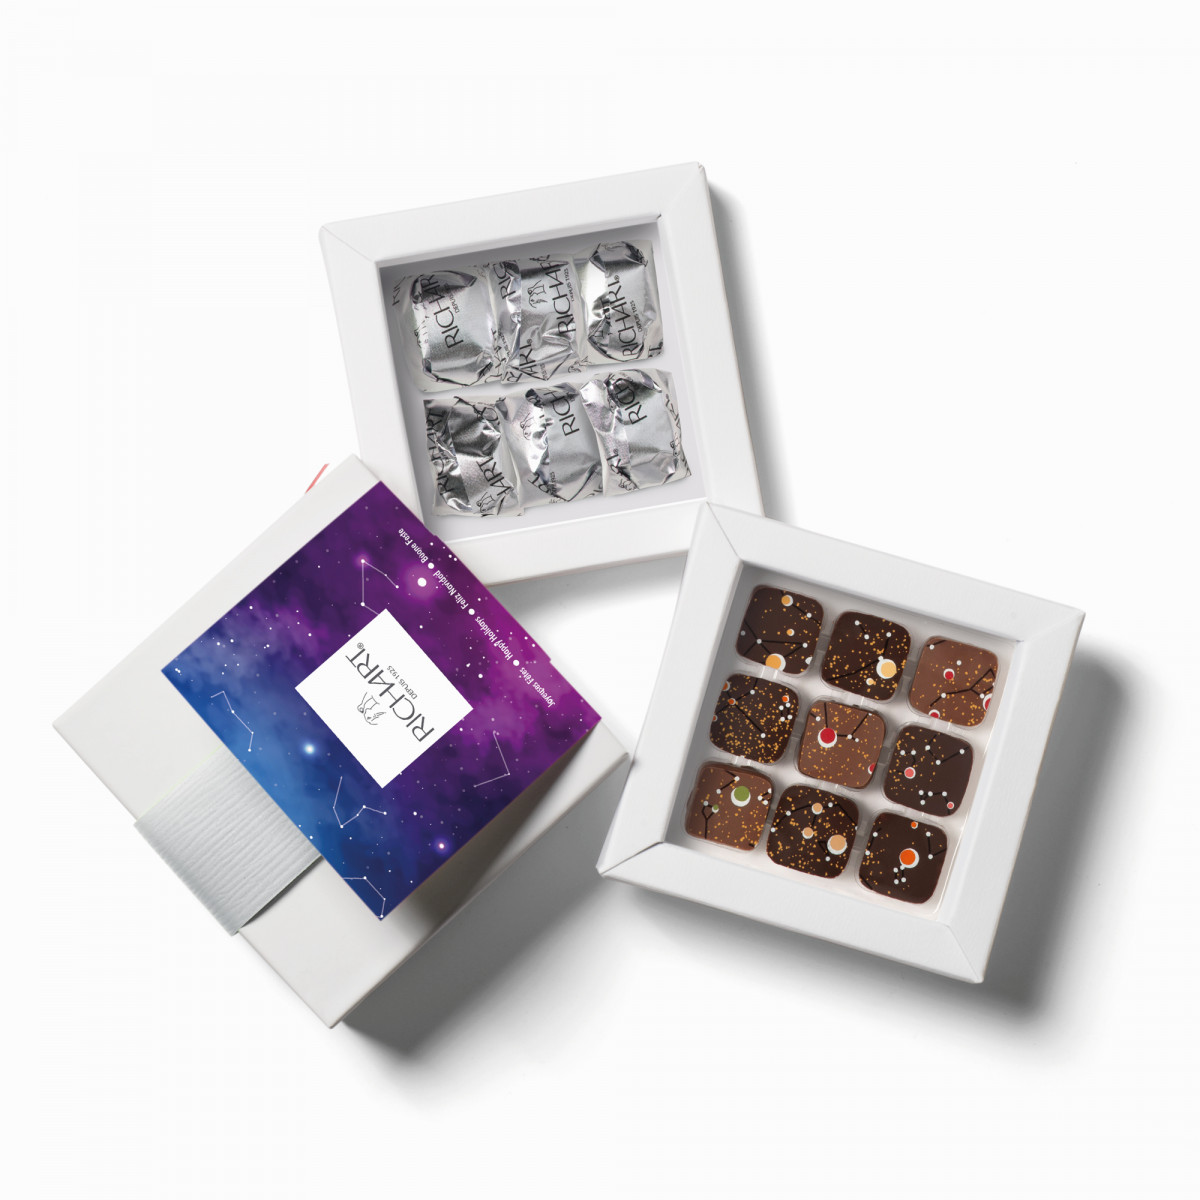 Constellations Pétillantes assortiment chocolats fourrés et marrons glacés PM